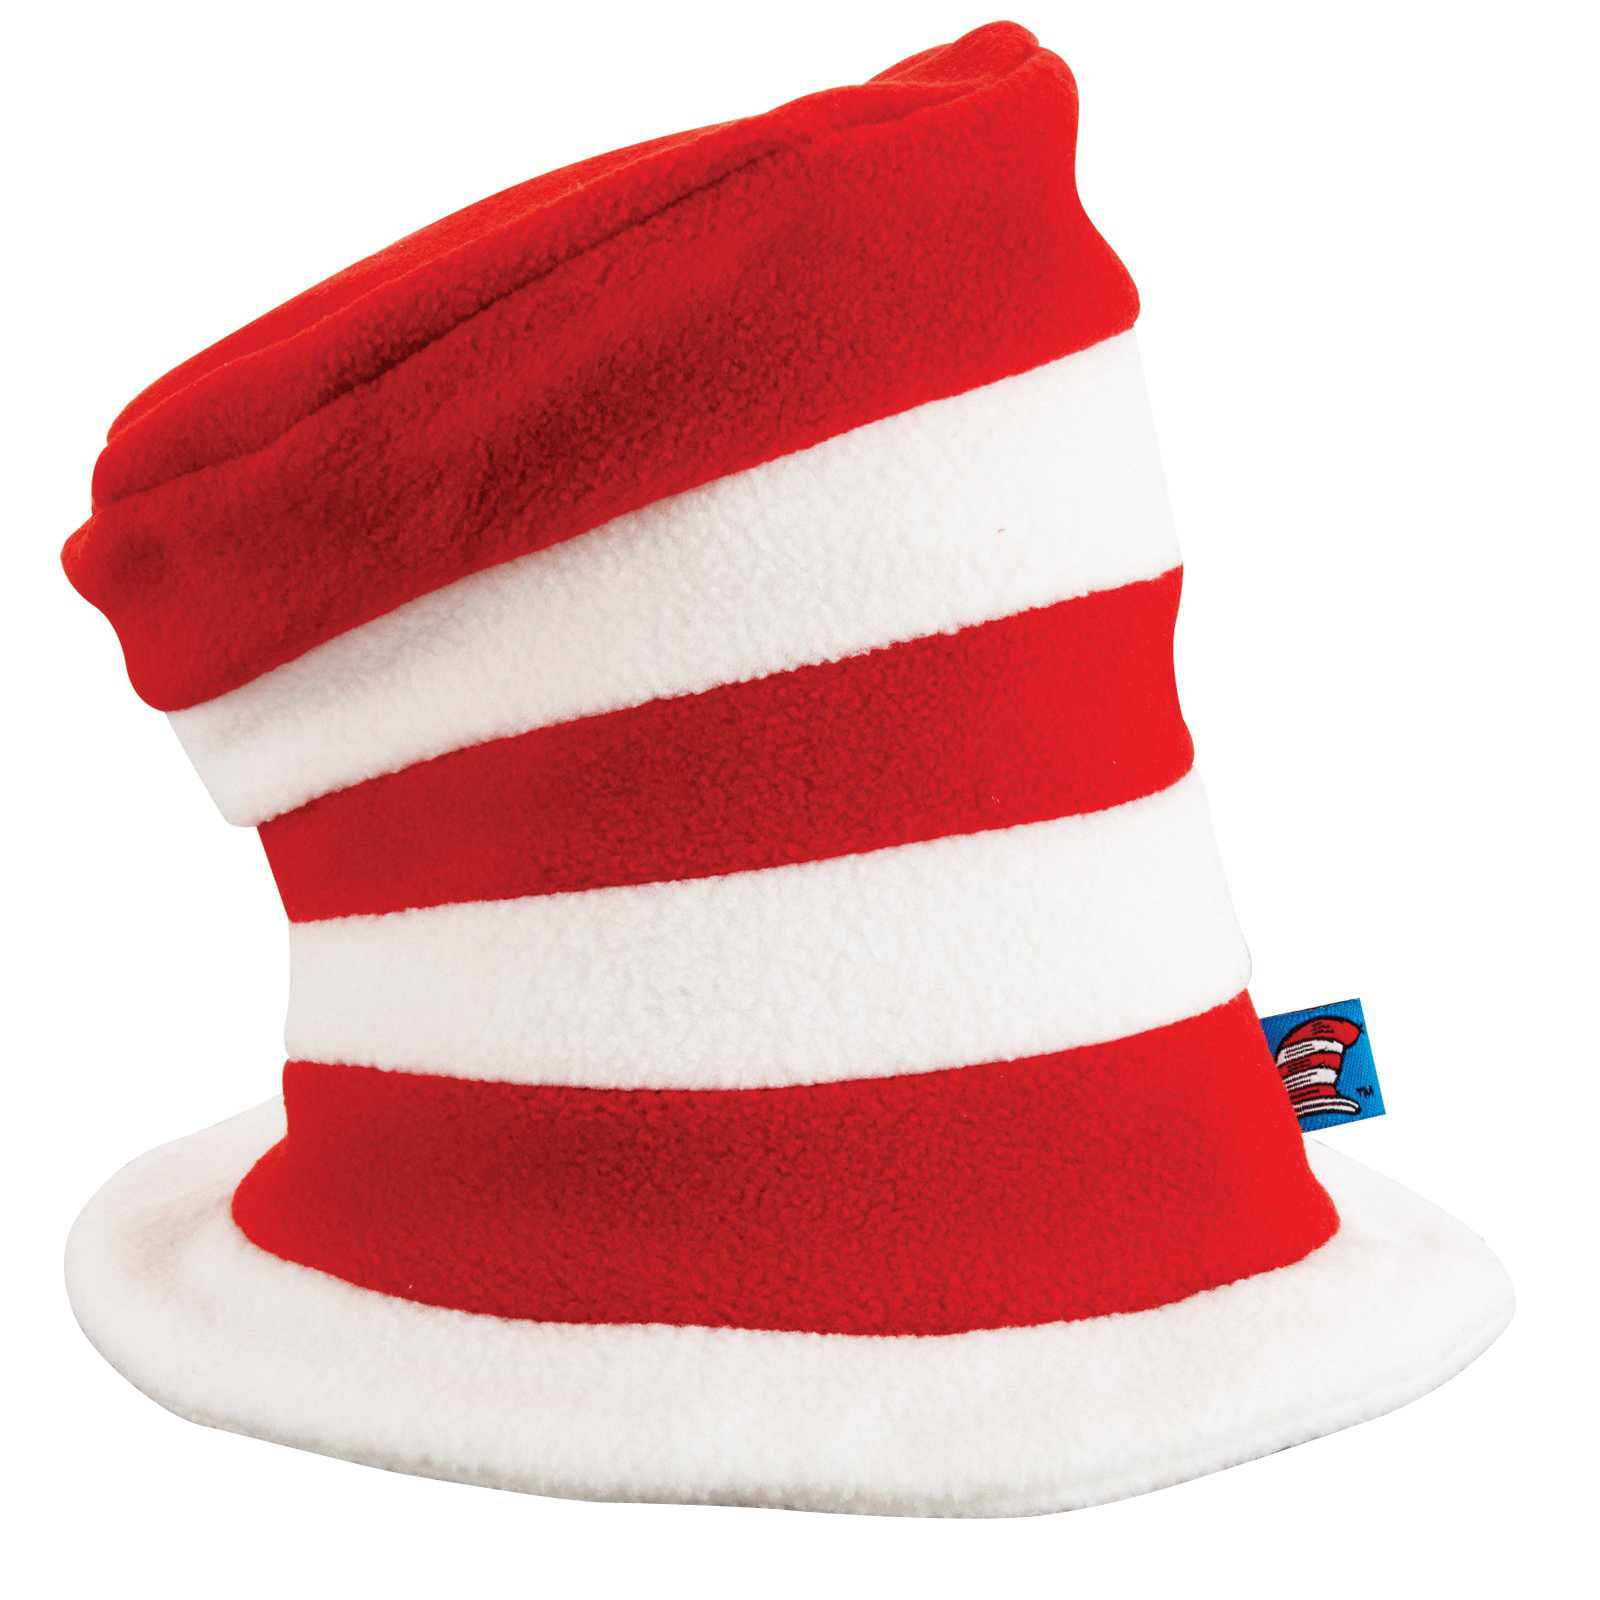 1600x1600 > Dr. Seuss: The Cat In The Hat Wallpapers